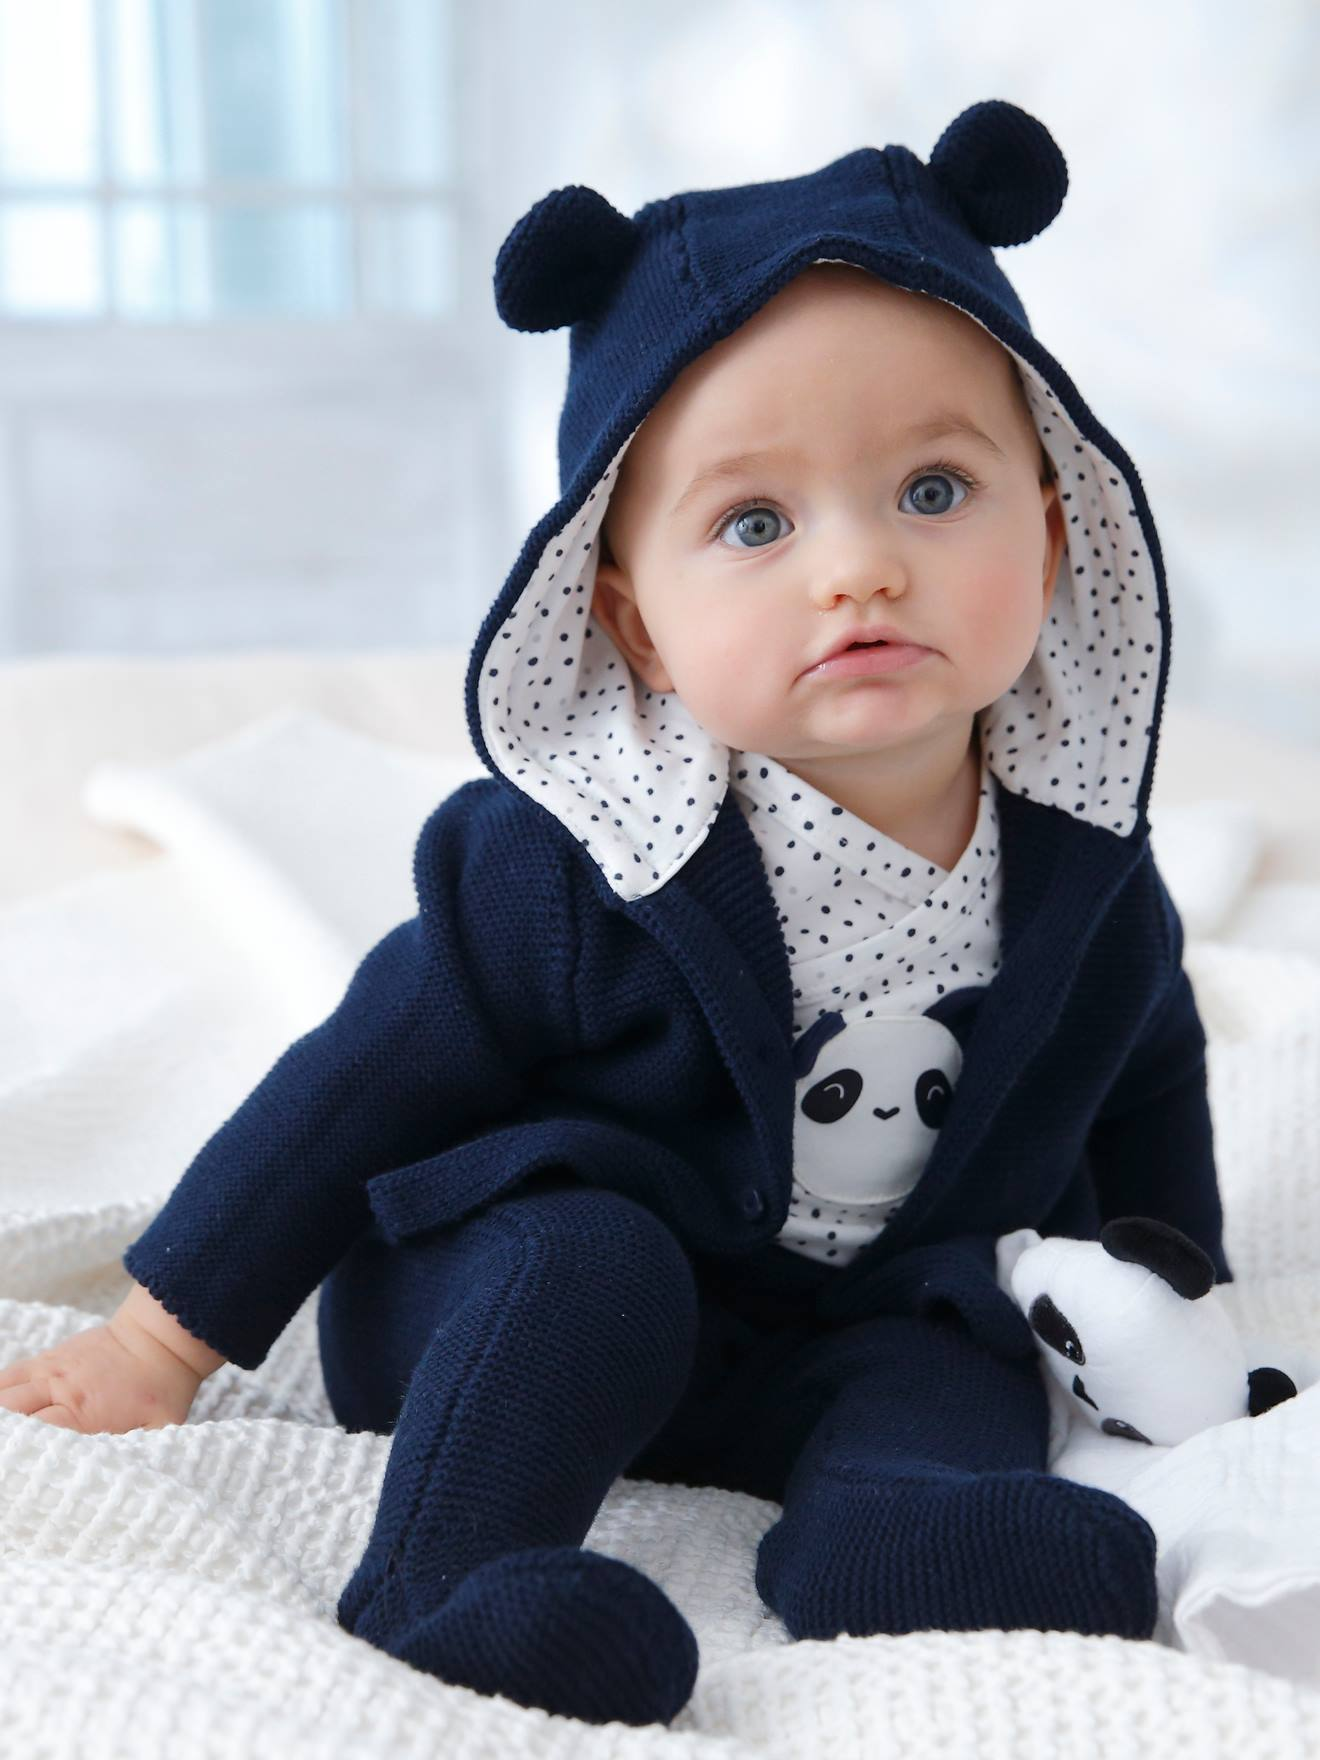 6-Piece Outfit Gift for Newborn Babies - blue dark solid